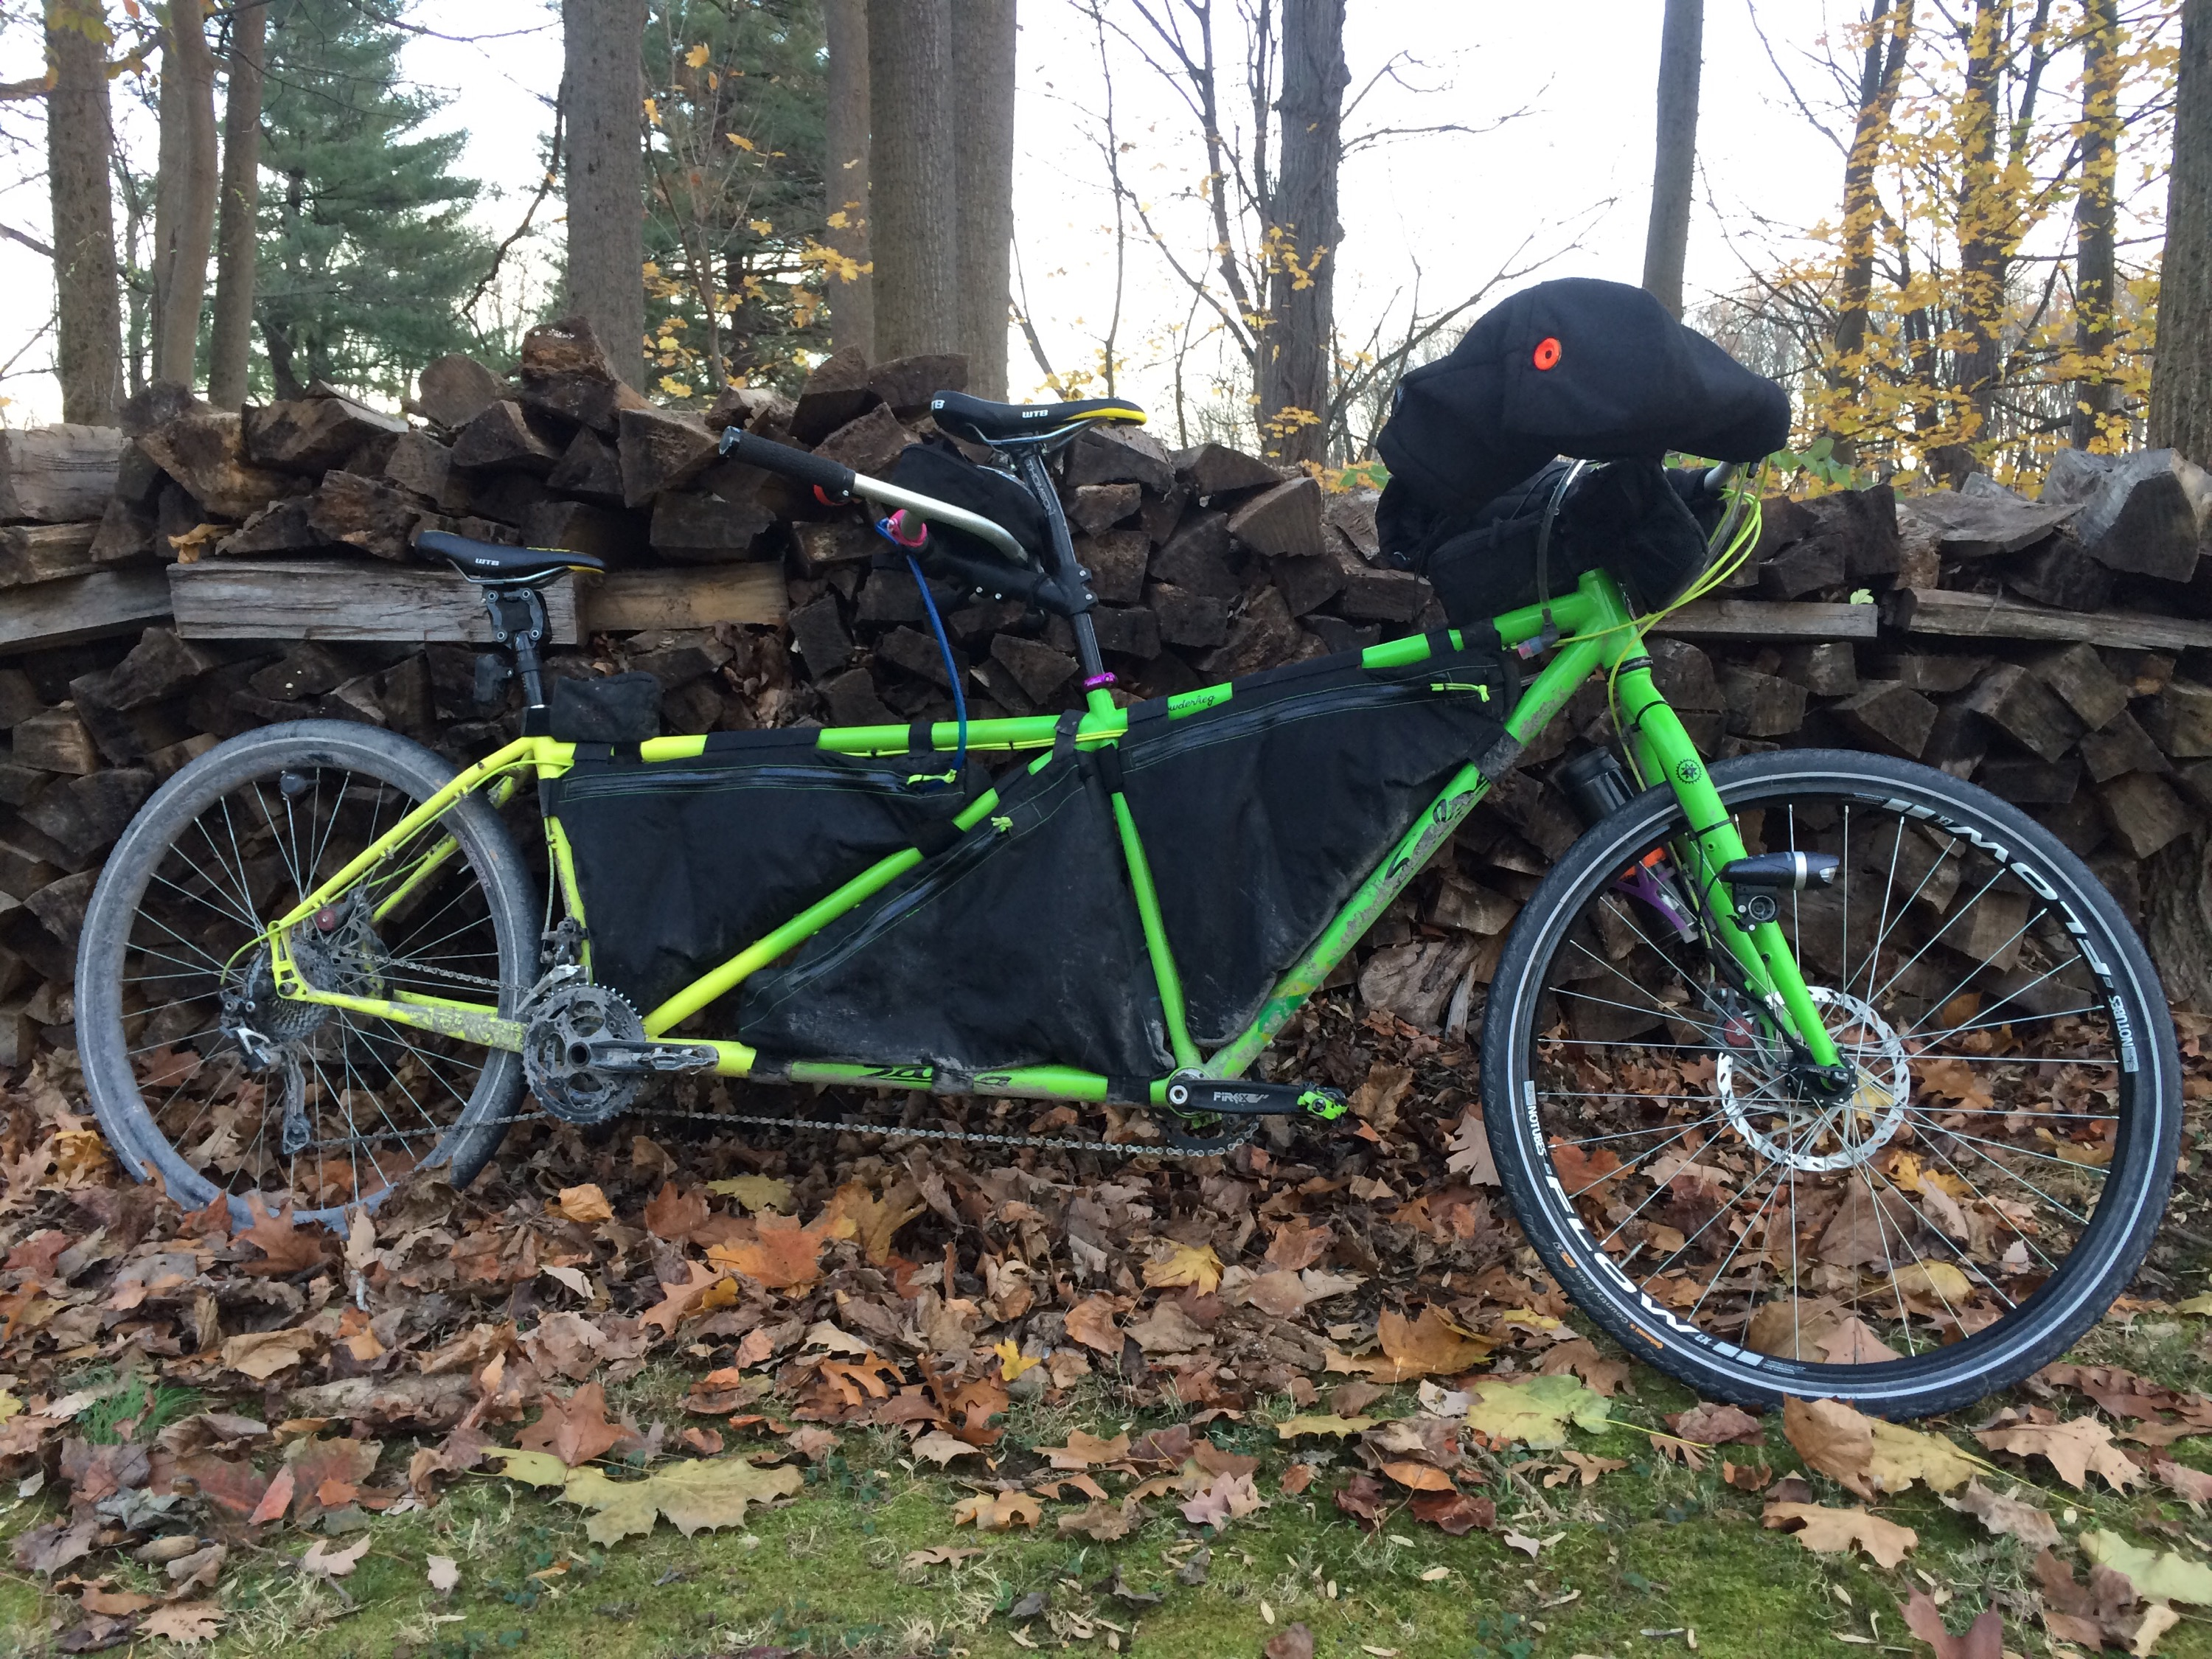 Ride to Thanksgiving: The Bike & Gear – to the nth degree